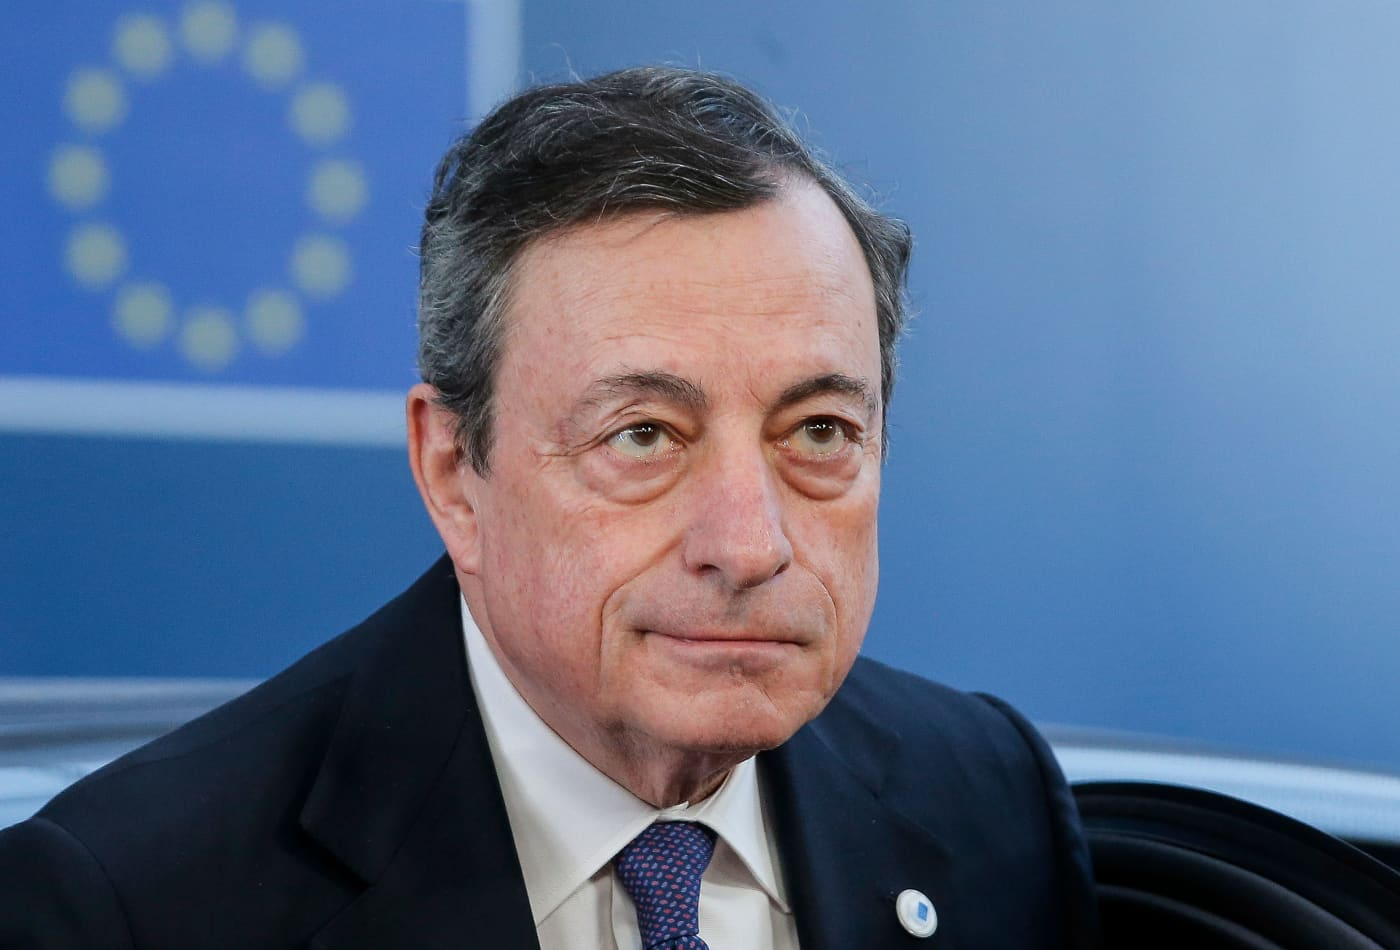 European Central Bank cuts its deposit rate, launches new bond-buying program